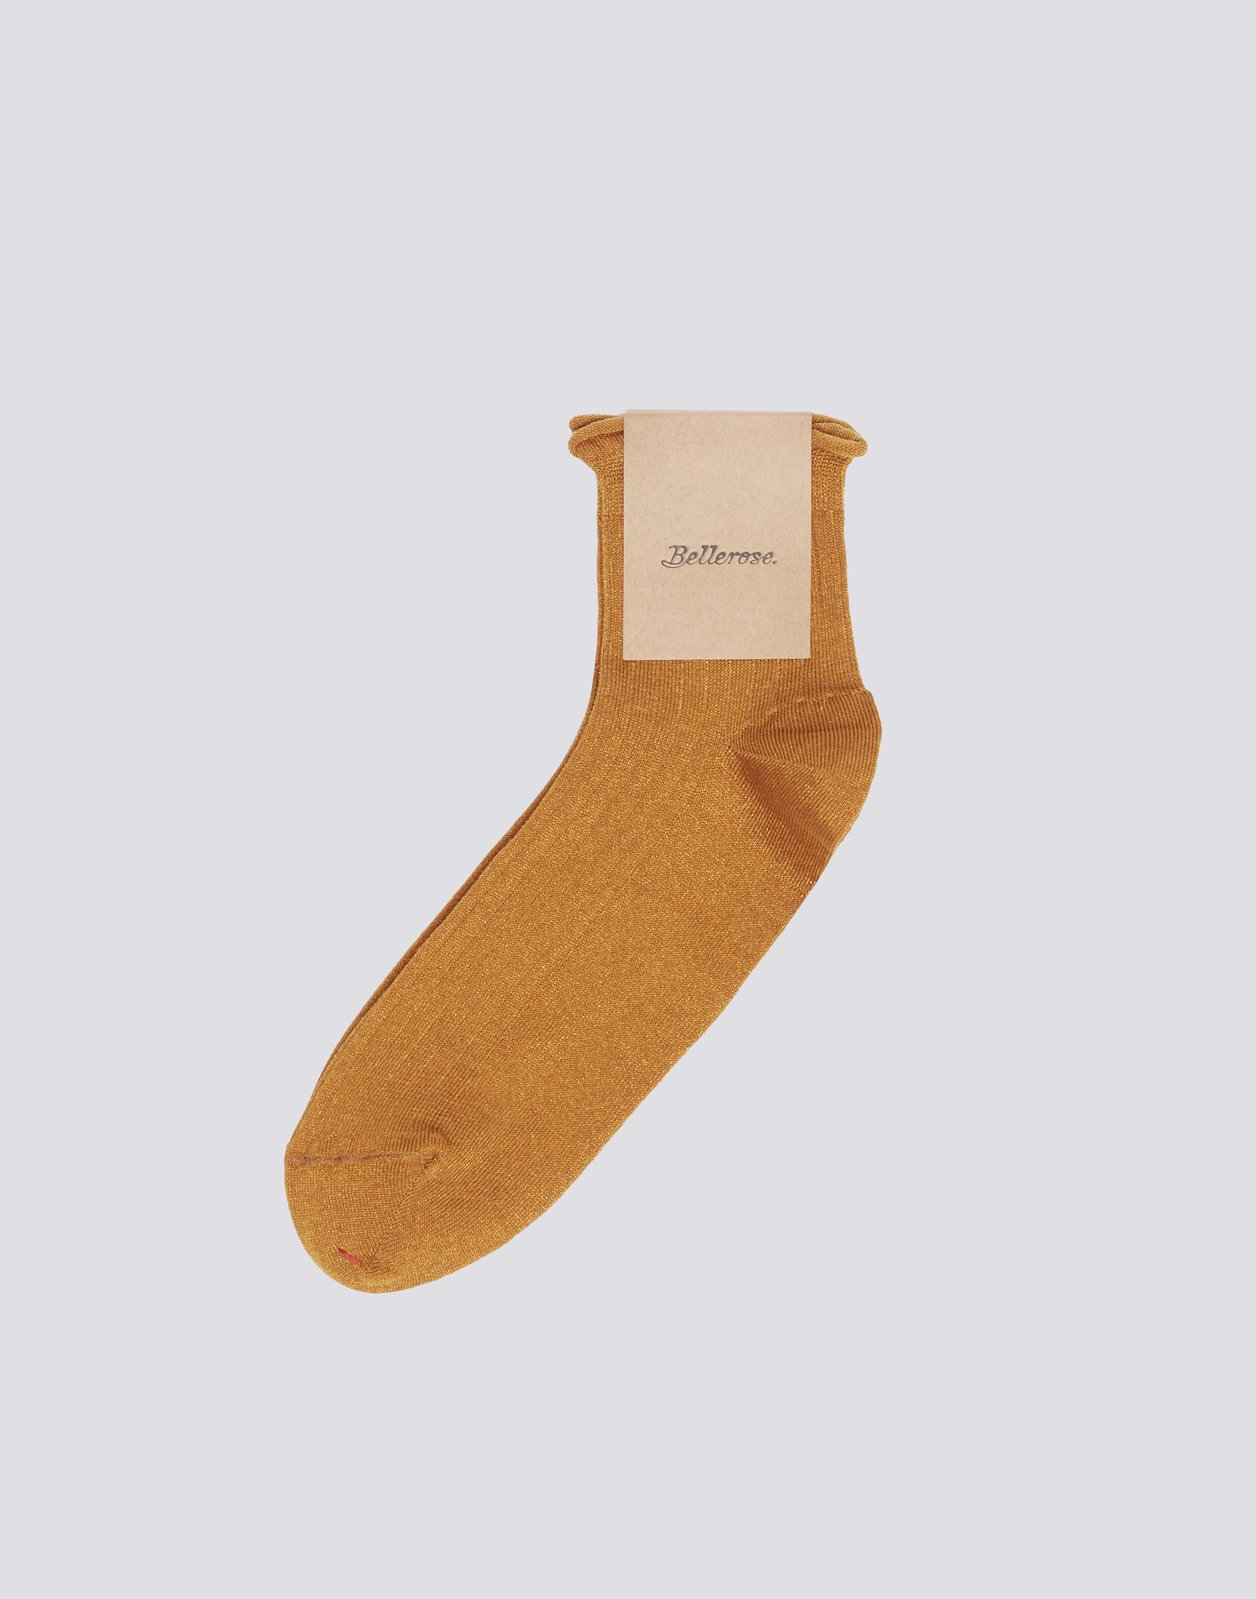 bellerose-freer-socks.jpg